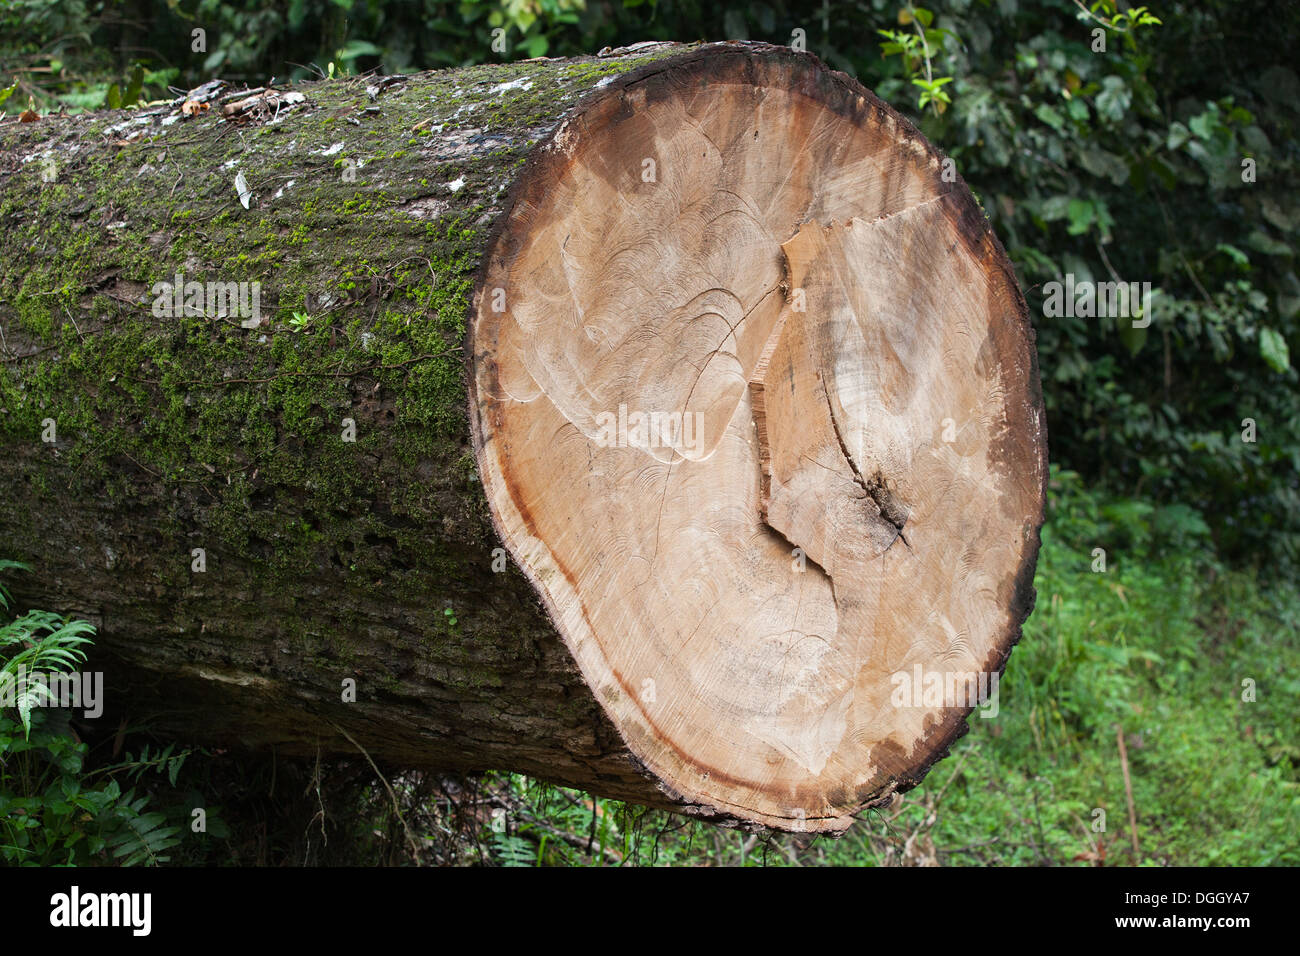 Trunk of cut tree in lowland tropical rainforest - Stock Image